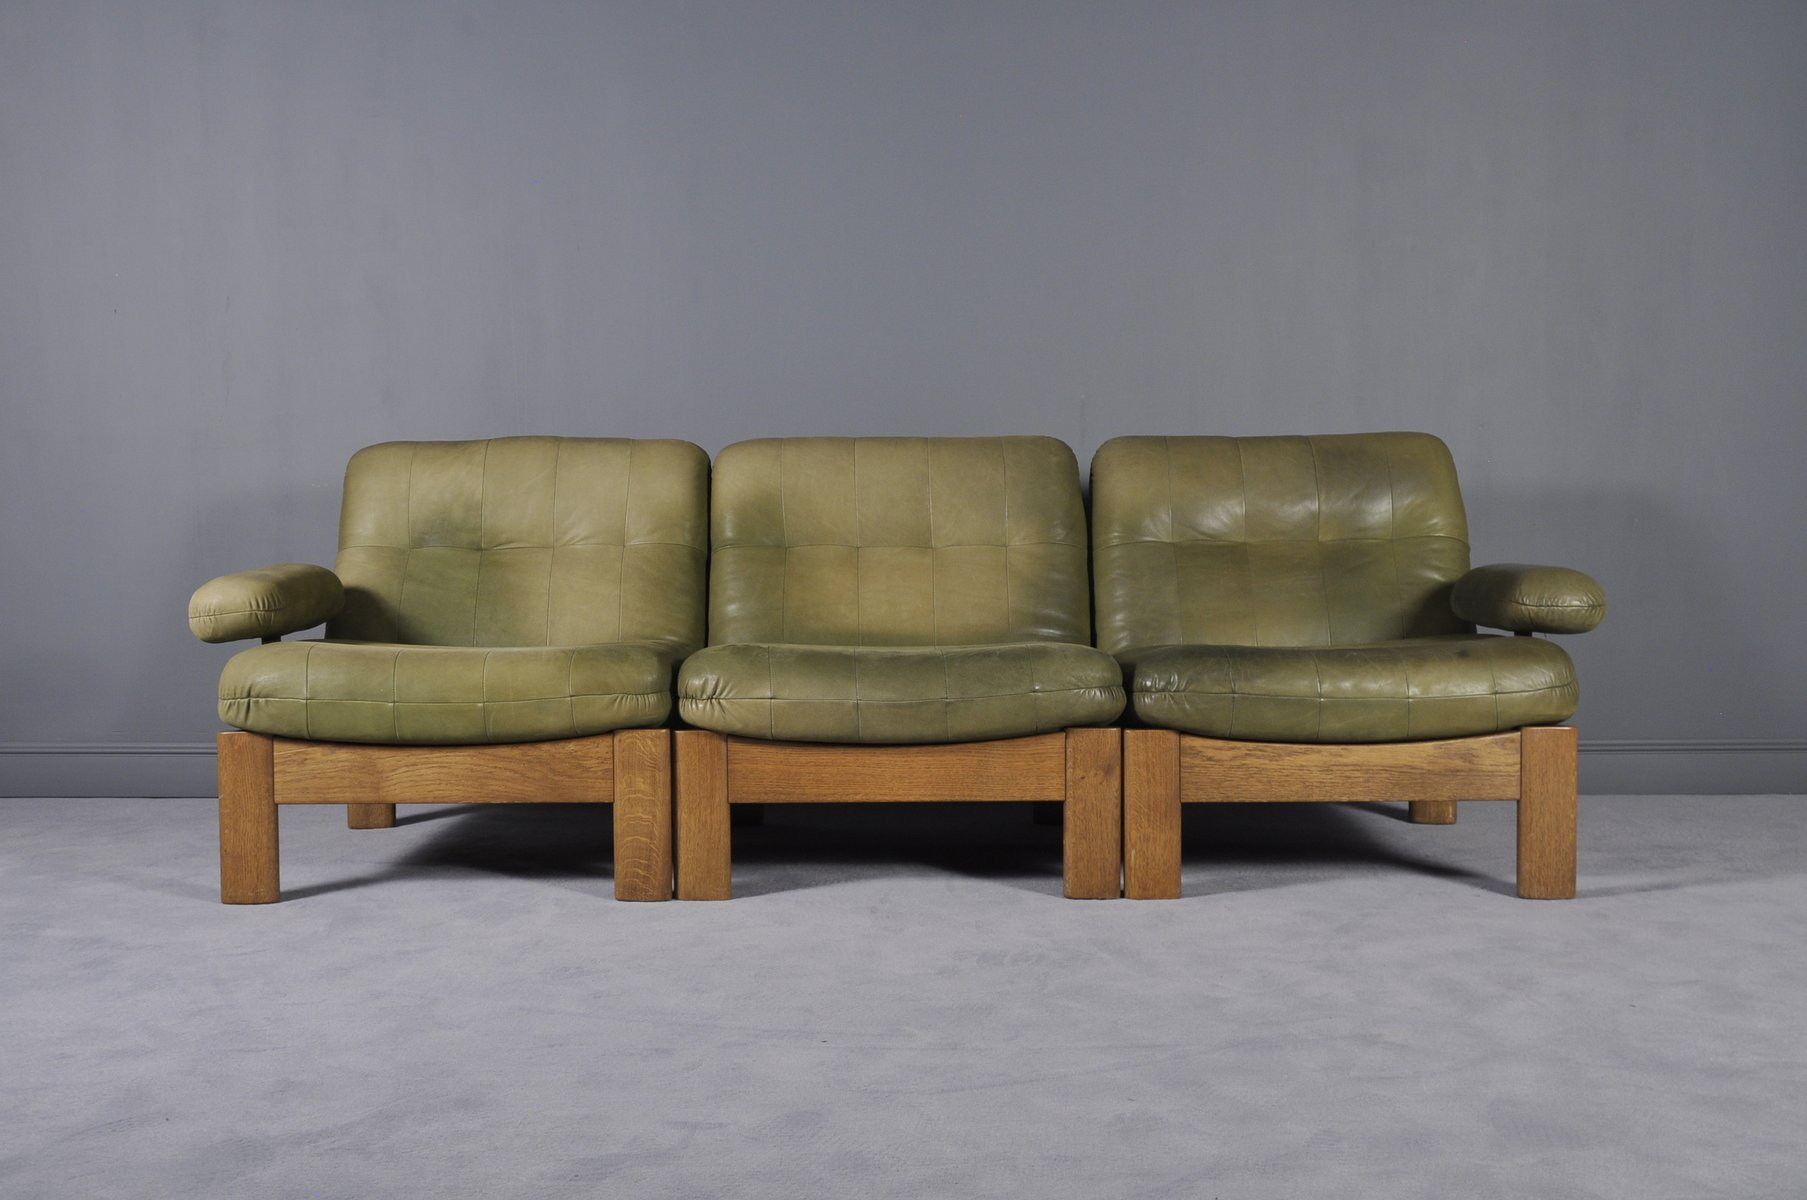 Sectional Green Leather Sofa From Leolux 1970s For Sale At Pamono